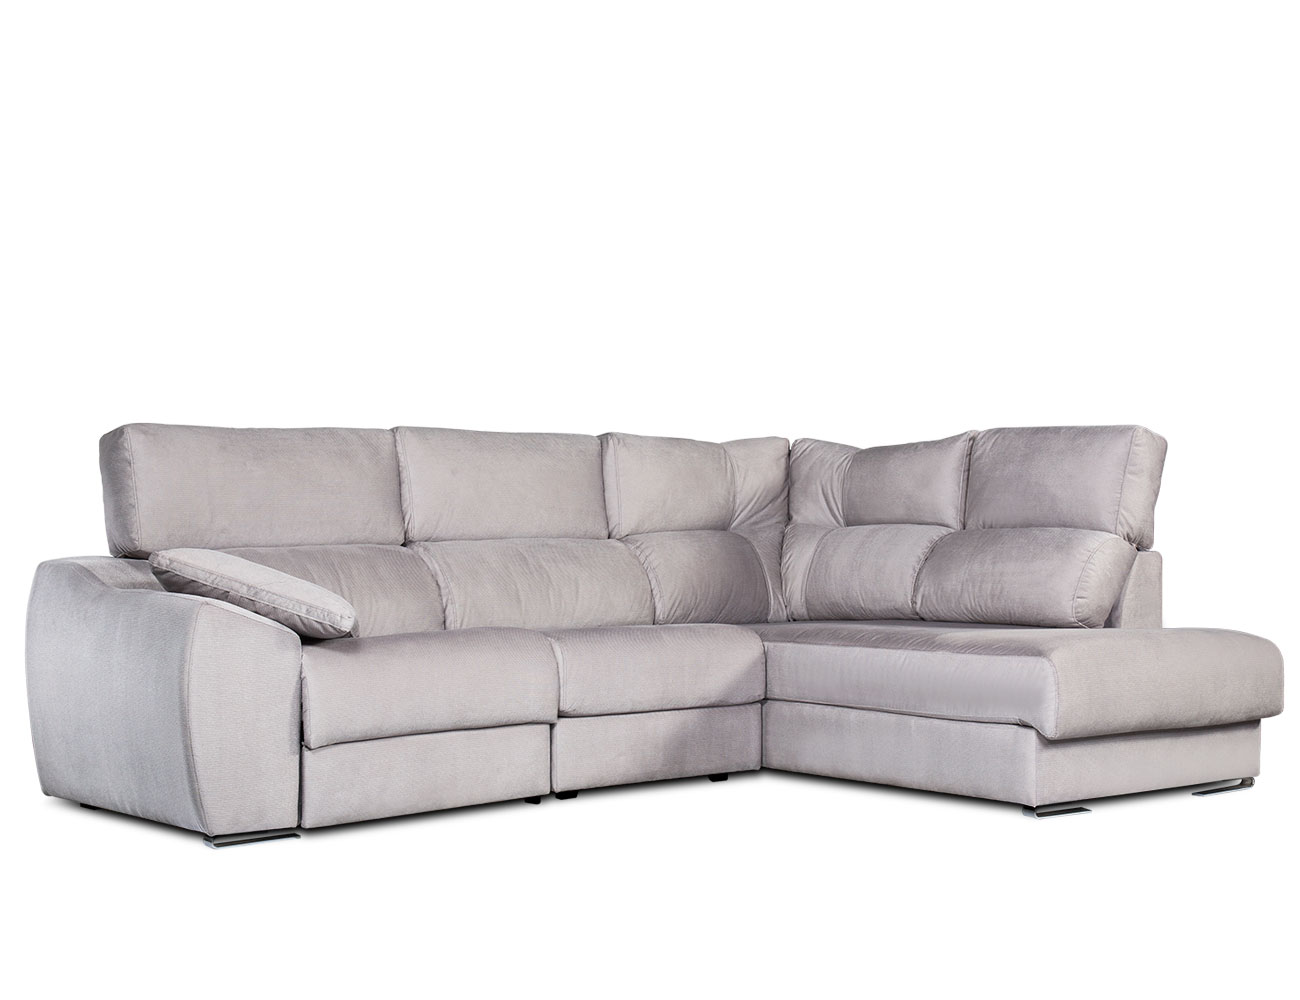 Sofa chaiselongue rincon electrico3